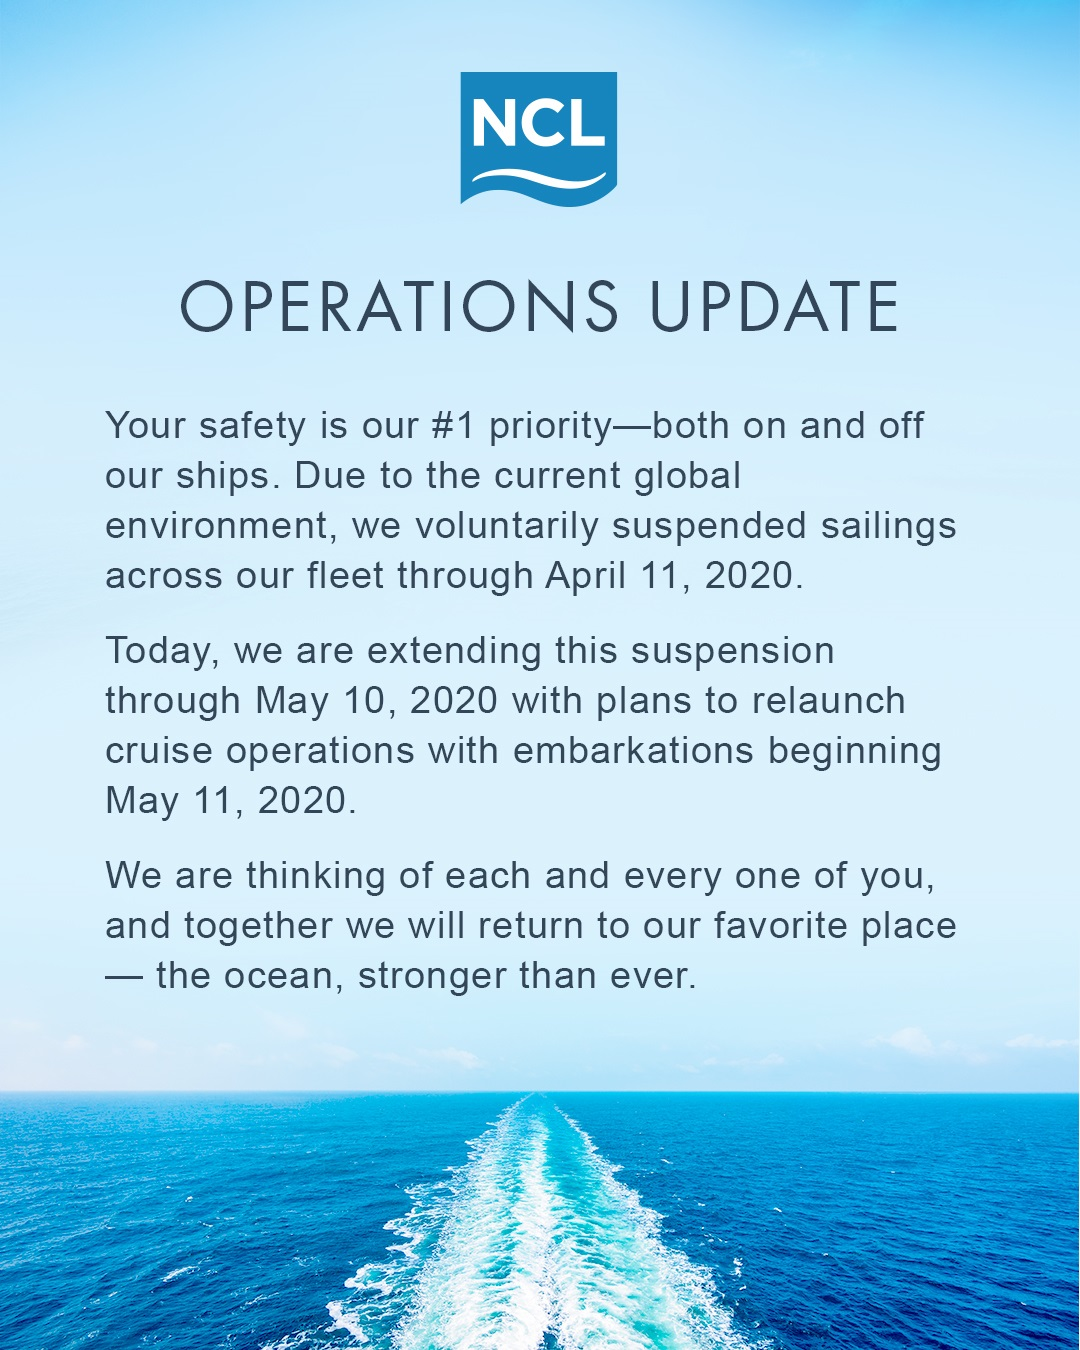 NCL has further delayed #cruising through May 10th